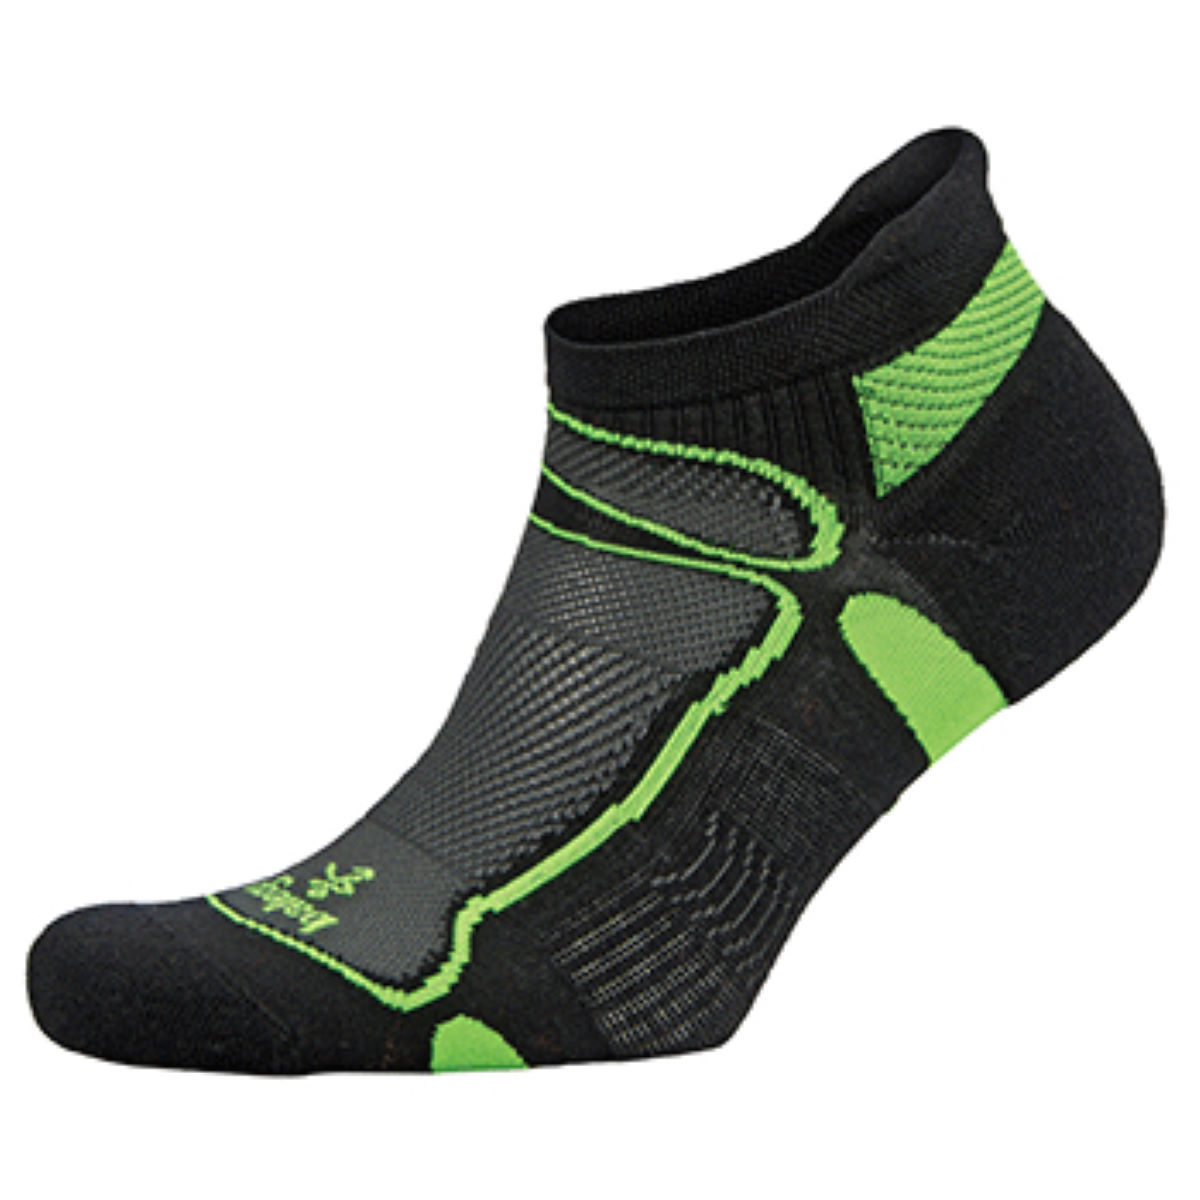 Chaussettes Balega Second Skin Ultralight No Show - Extra Large